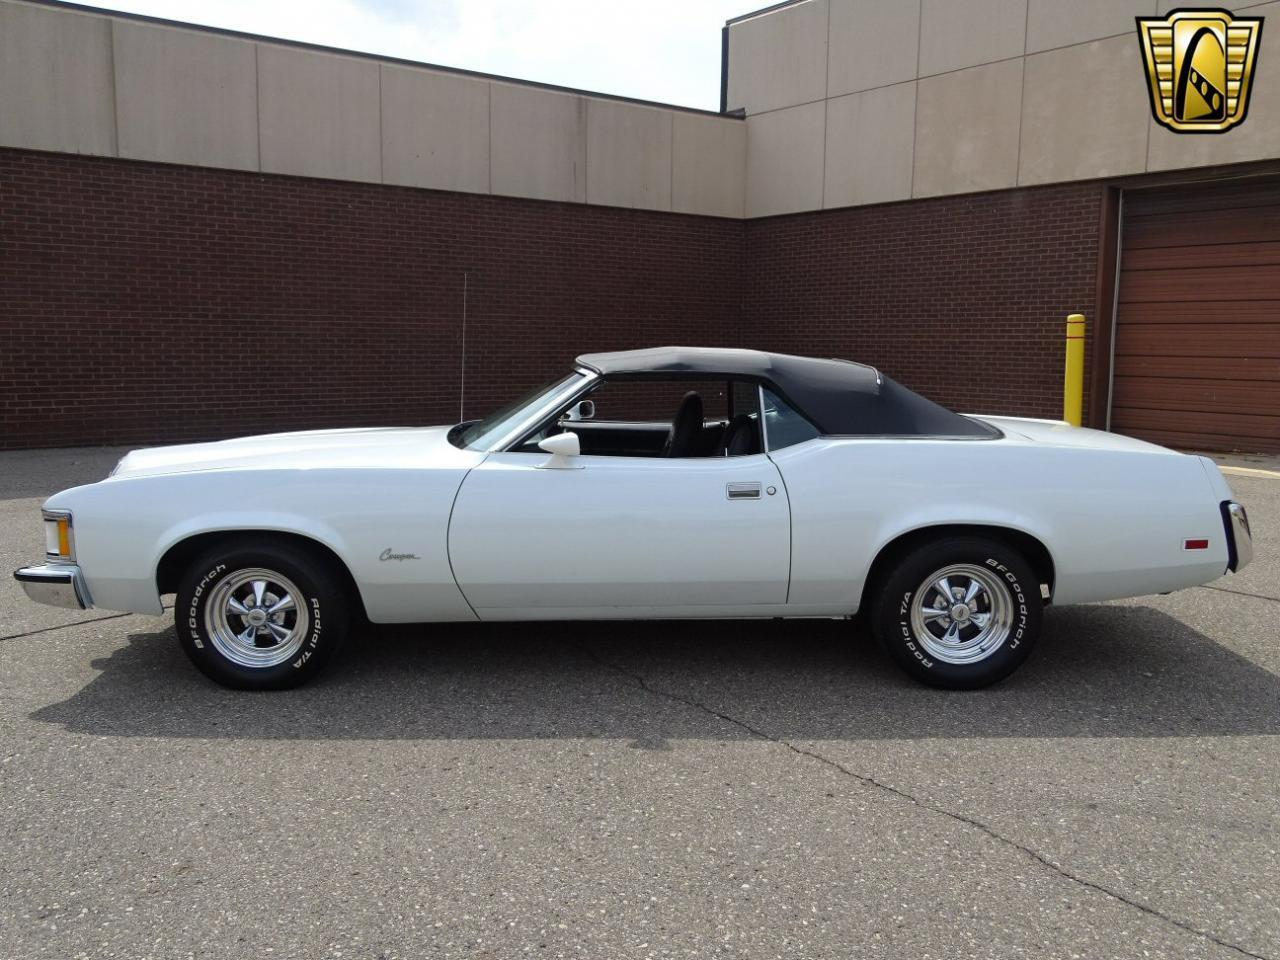 Large Picture of '73 Cougar located in Dearborn Michigan - $19,995.00 - LCNZ